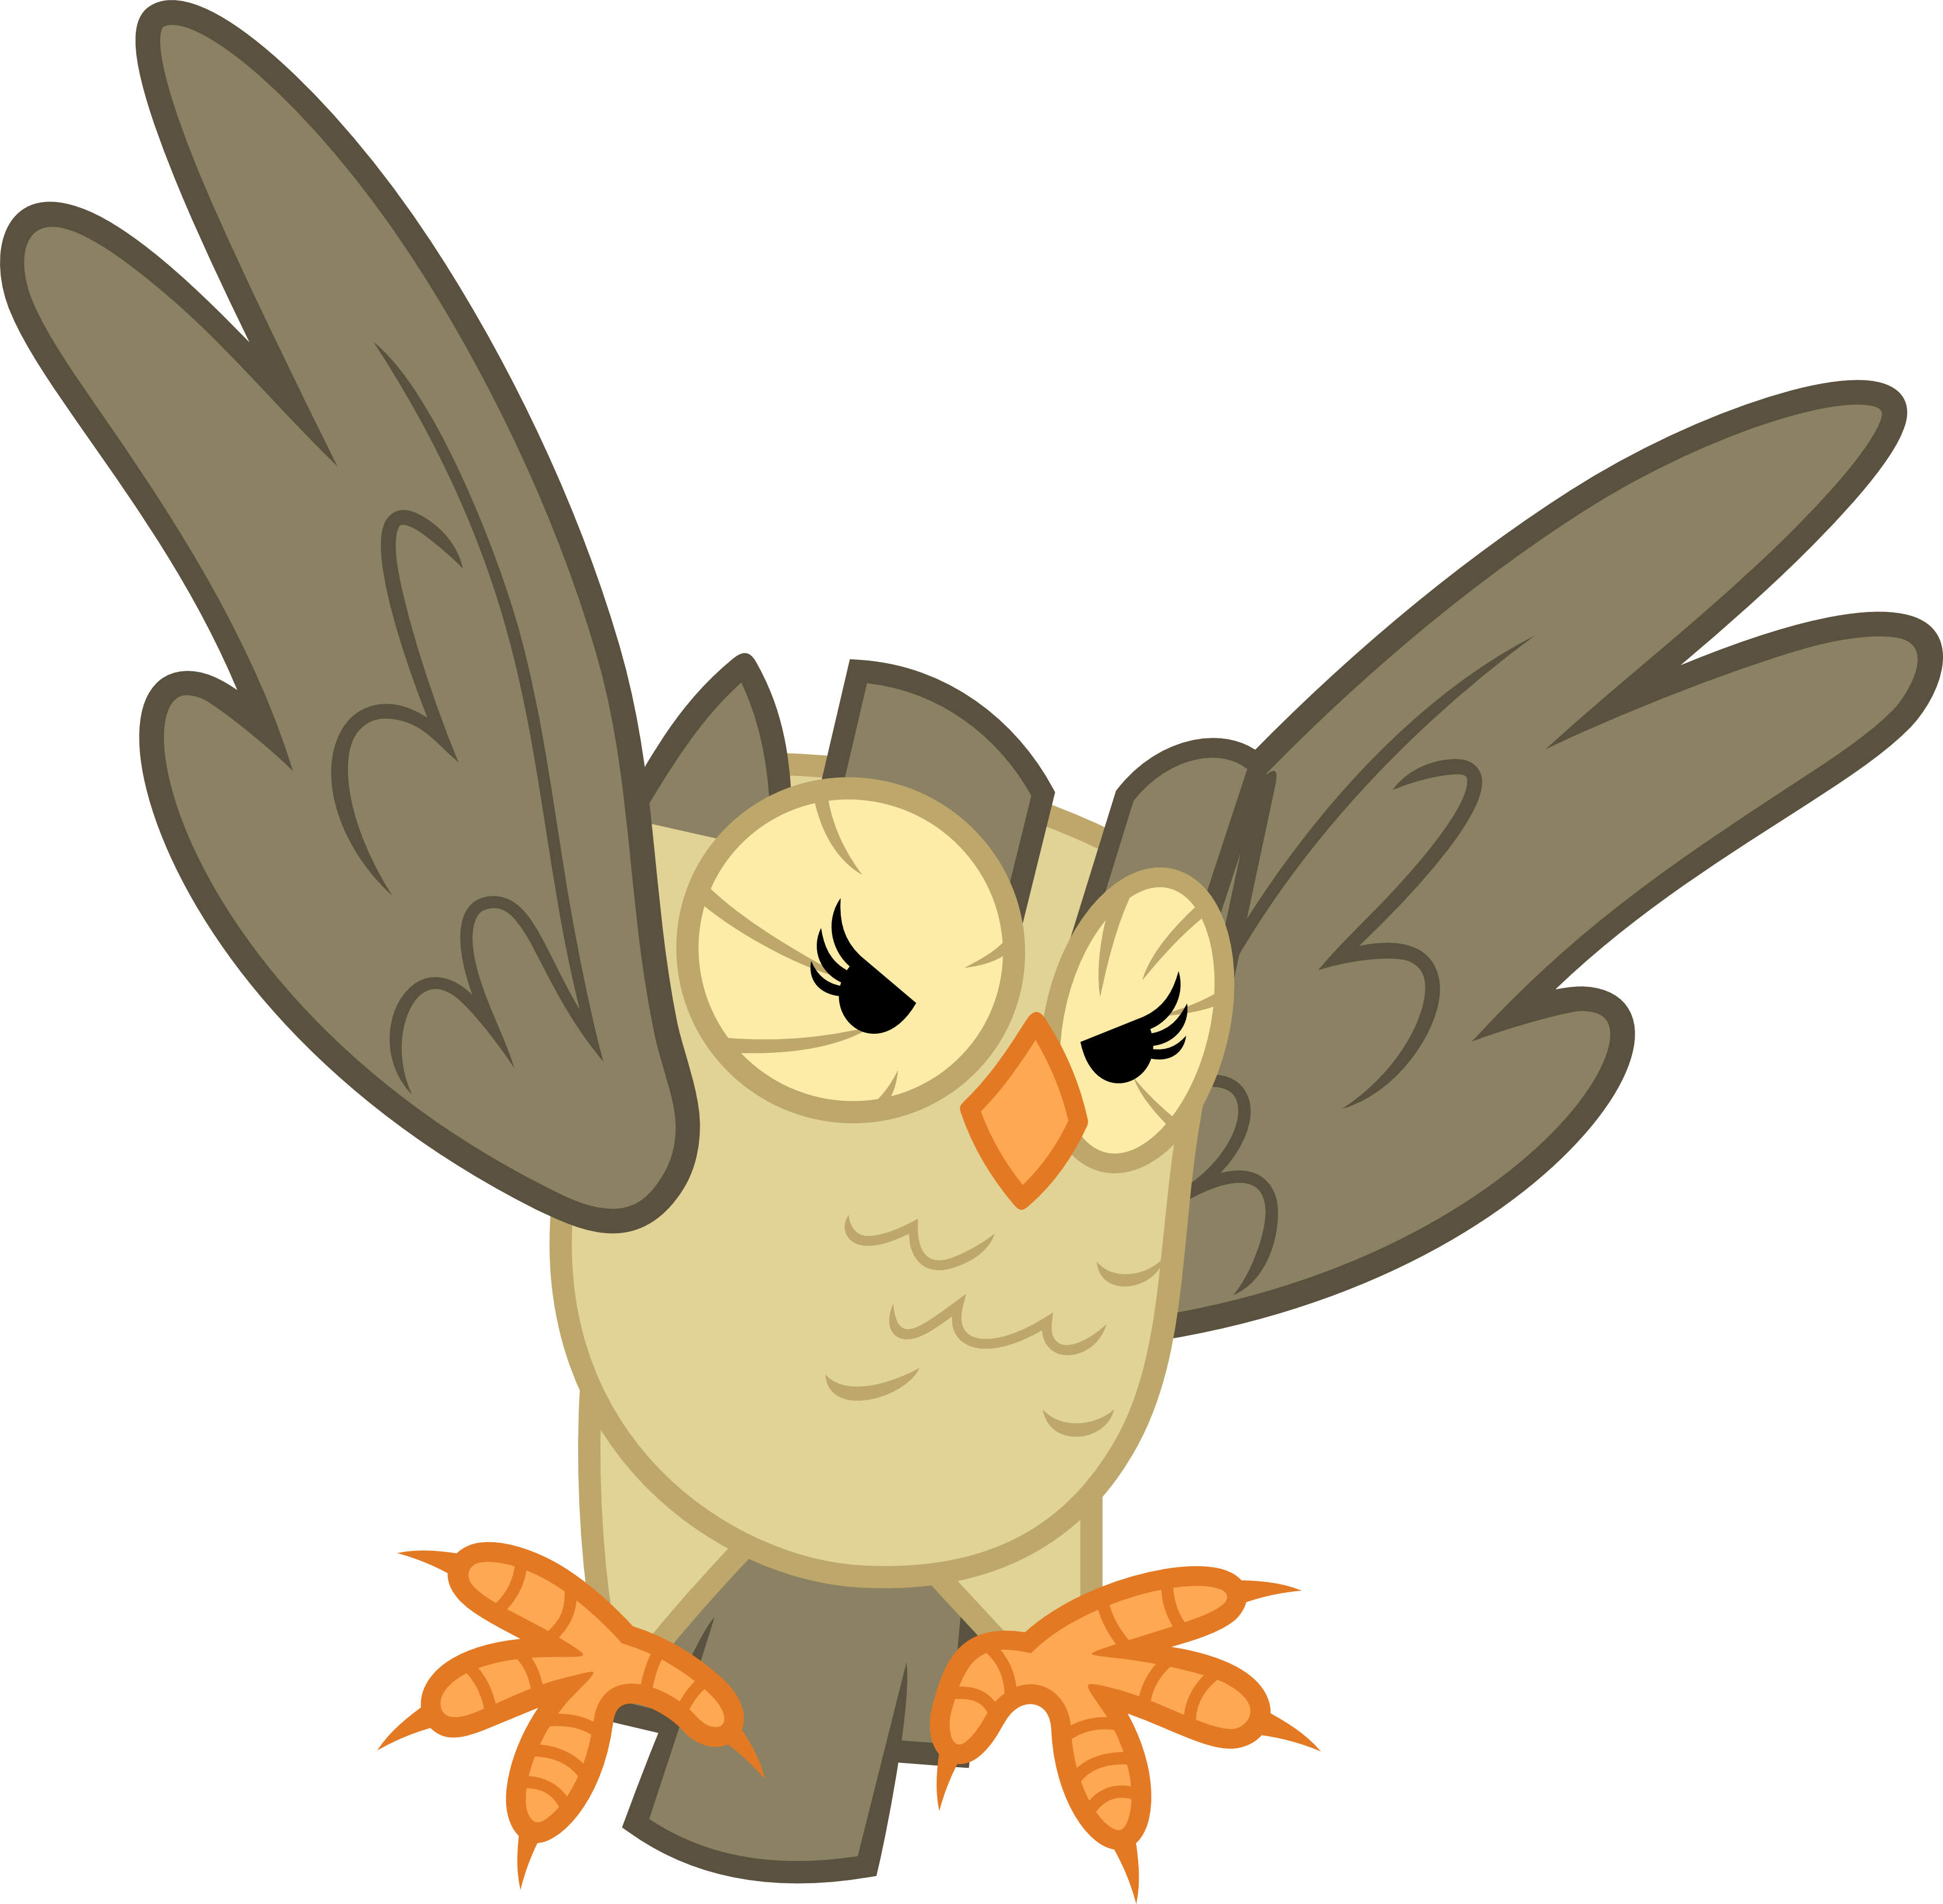 this owl has claws by porygon2z on deviantart